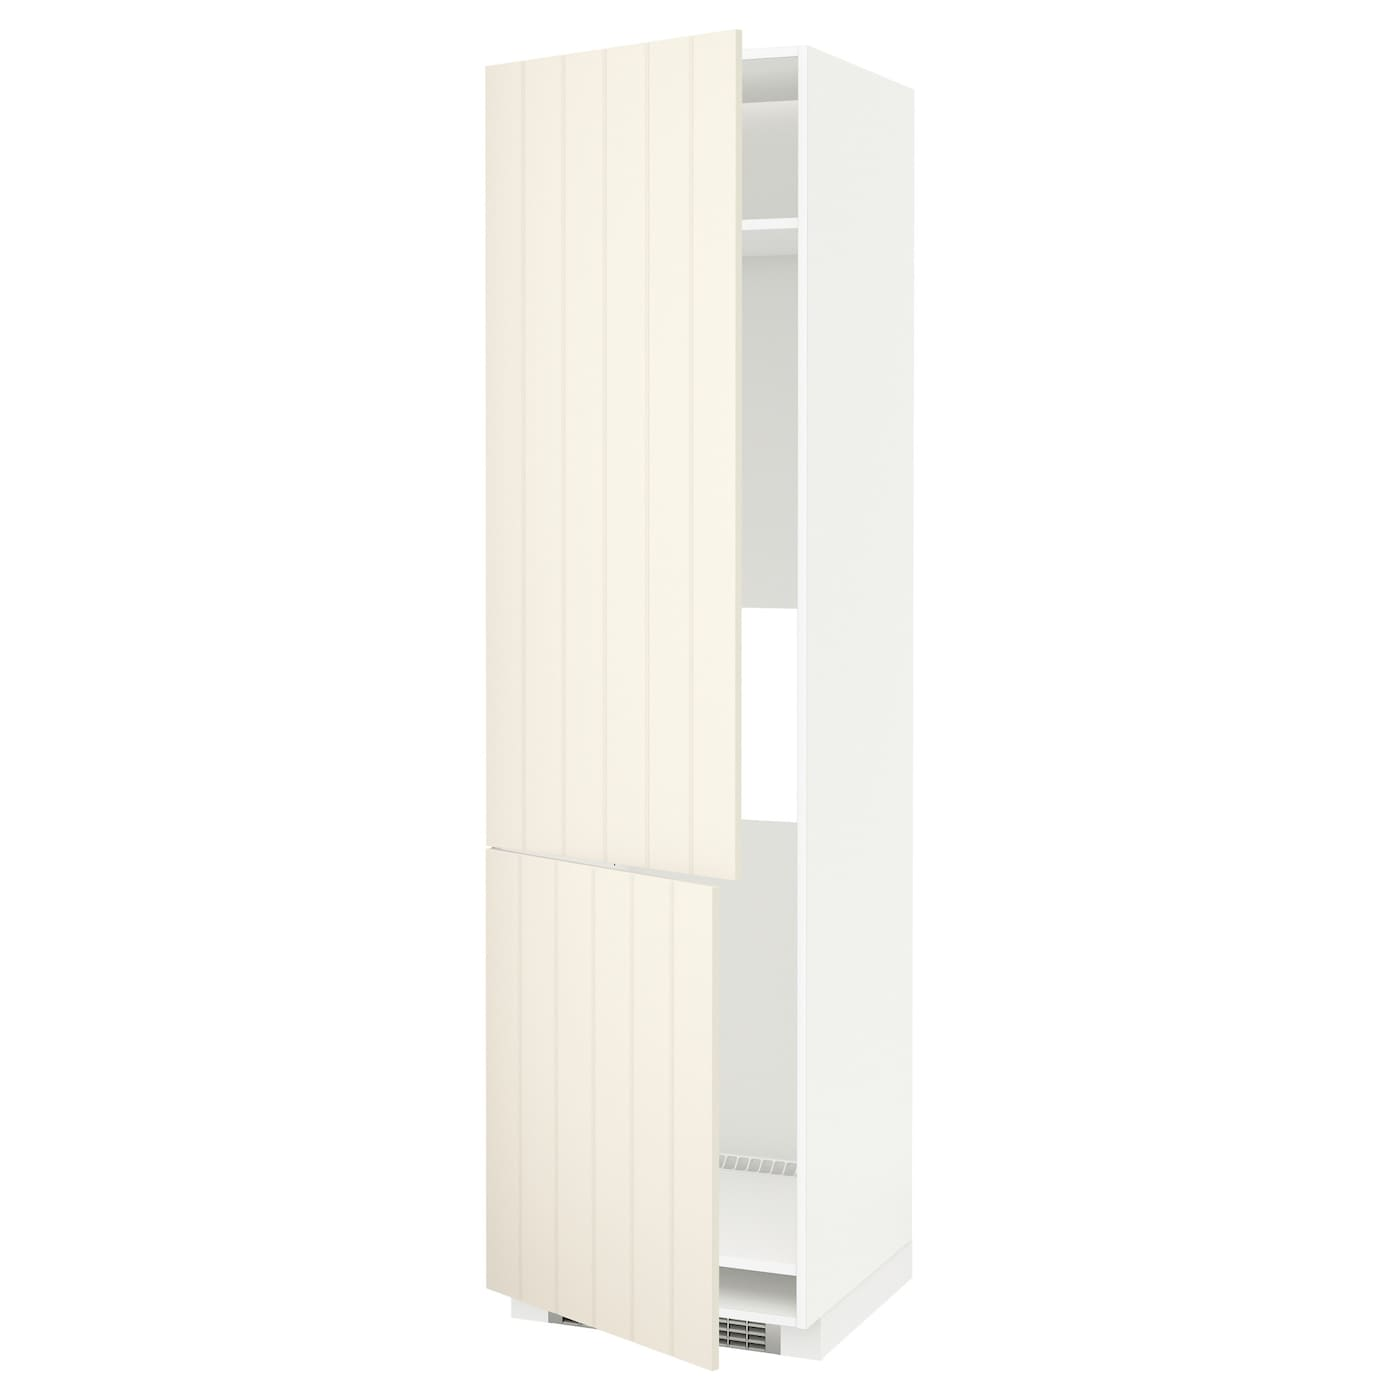 IKEA METOD high cab f fridge/freezer w 2 doors Sturdy frame construction, 18 mm thick.